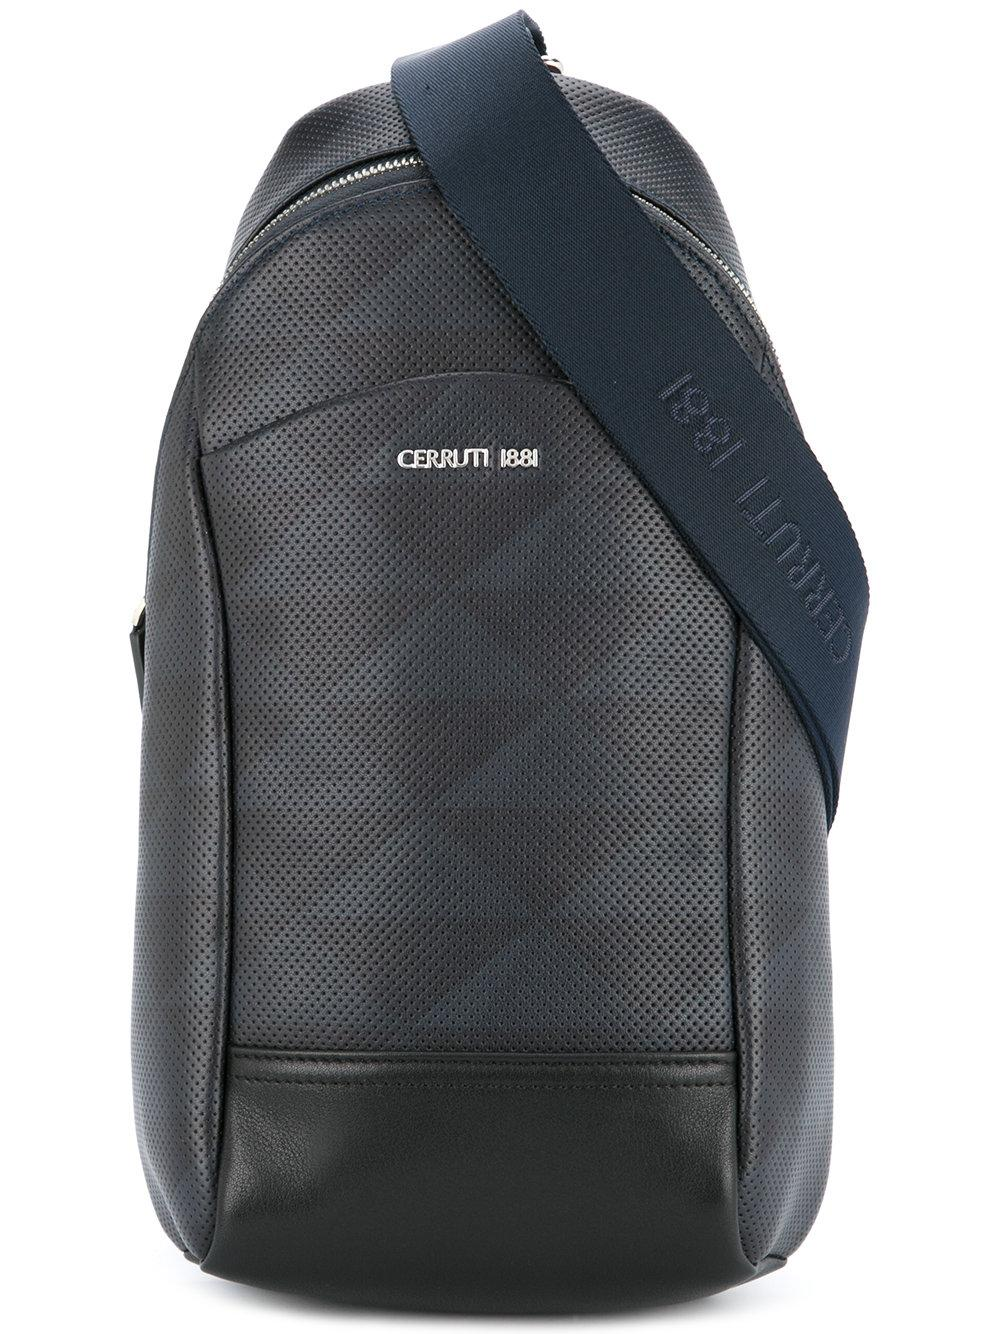 8db5103a06 Cerruti 1881 Perforated Single Strap Backpack - Black | ModeSens